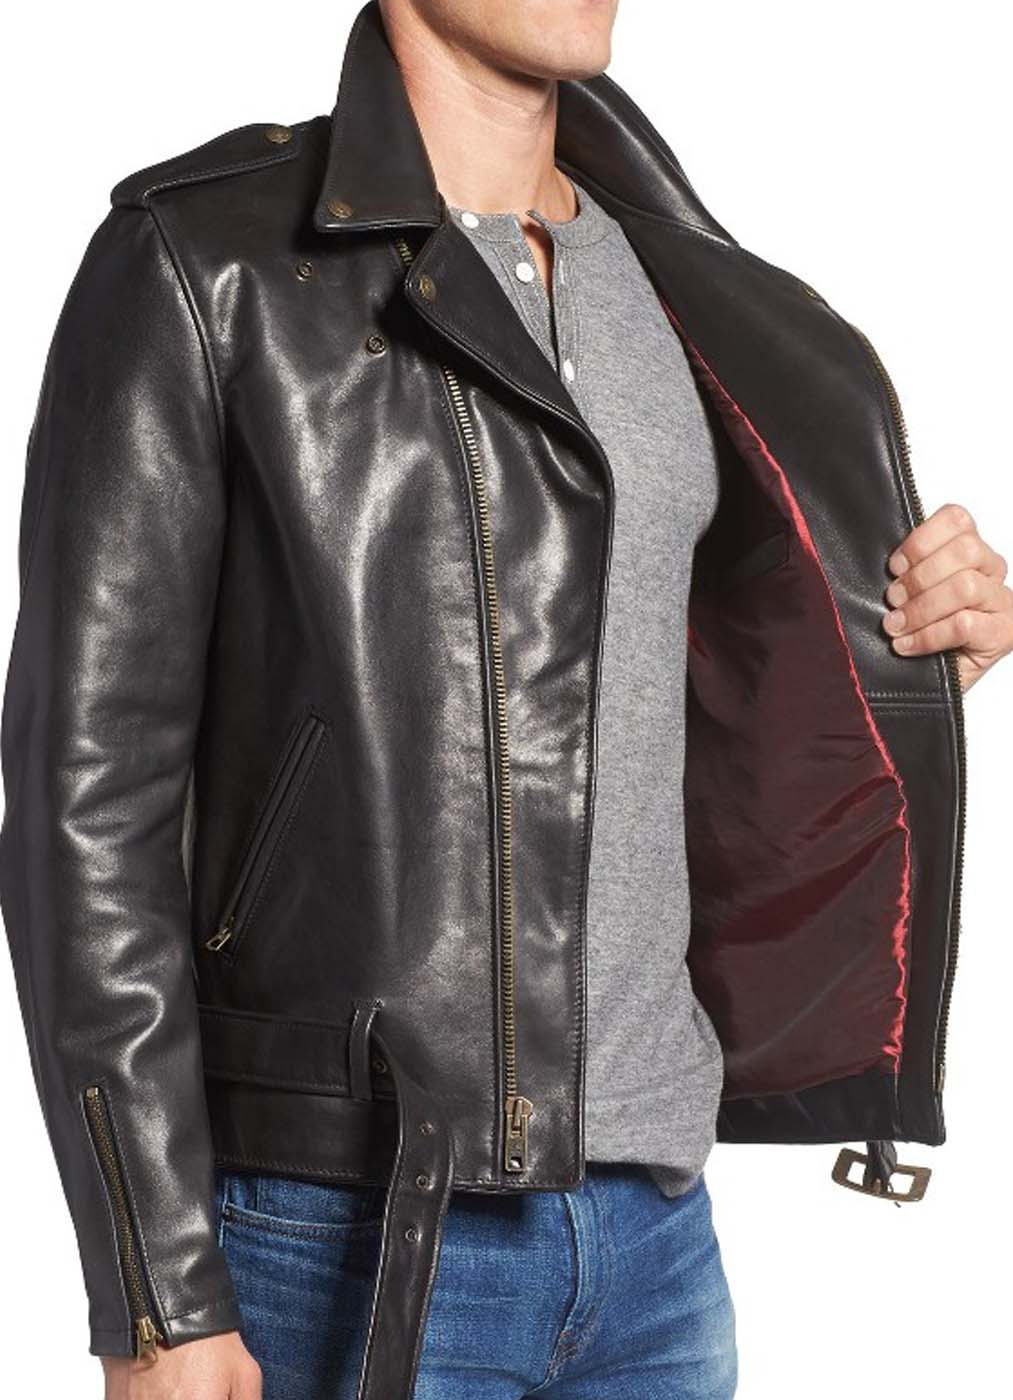 Leather-Moto-Jacket-For-Men-1.